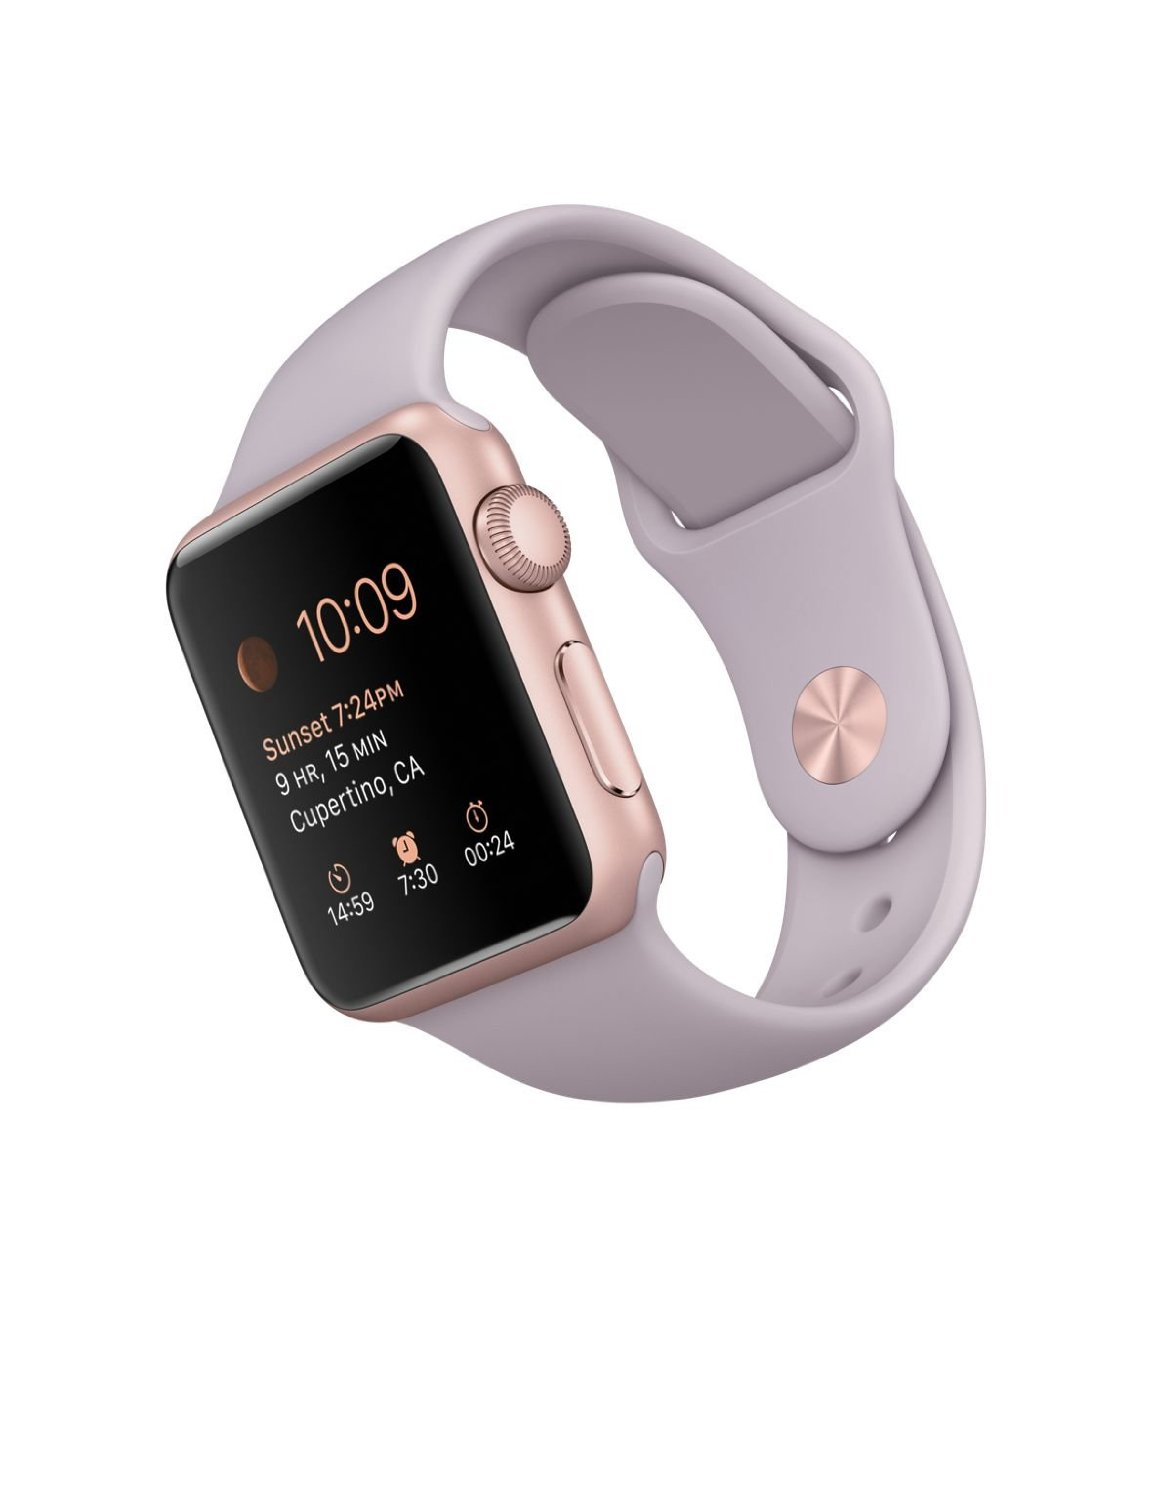 apple watch, iphone 7 accessories